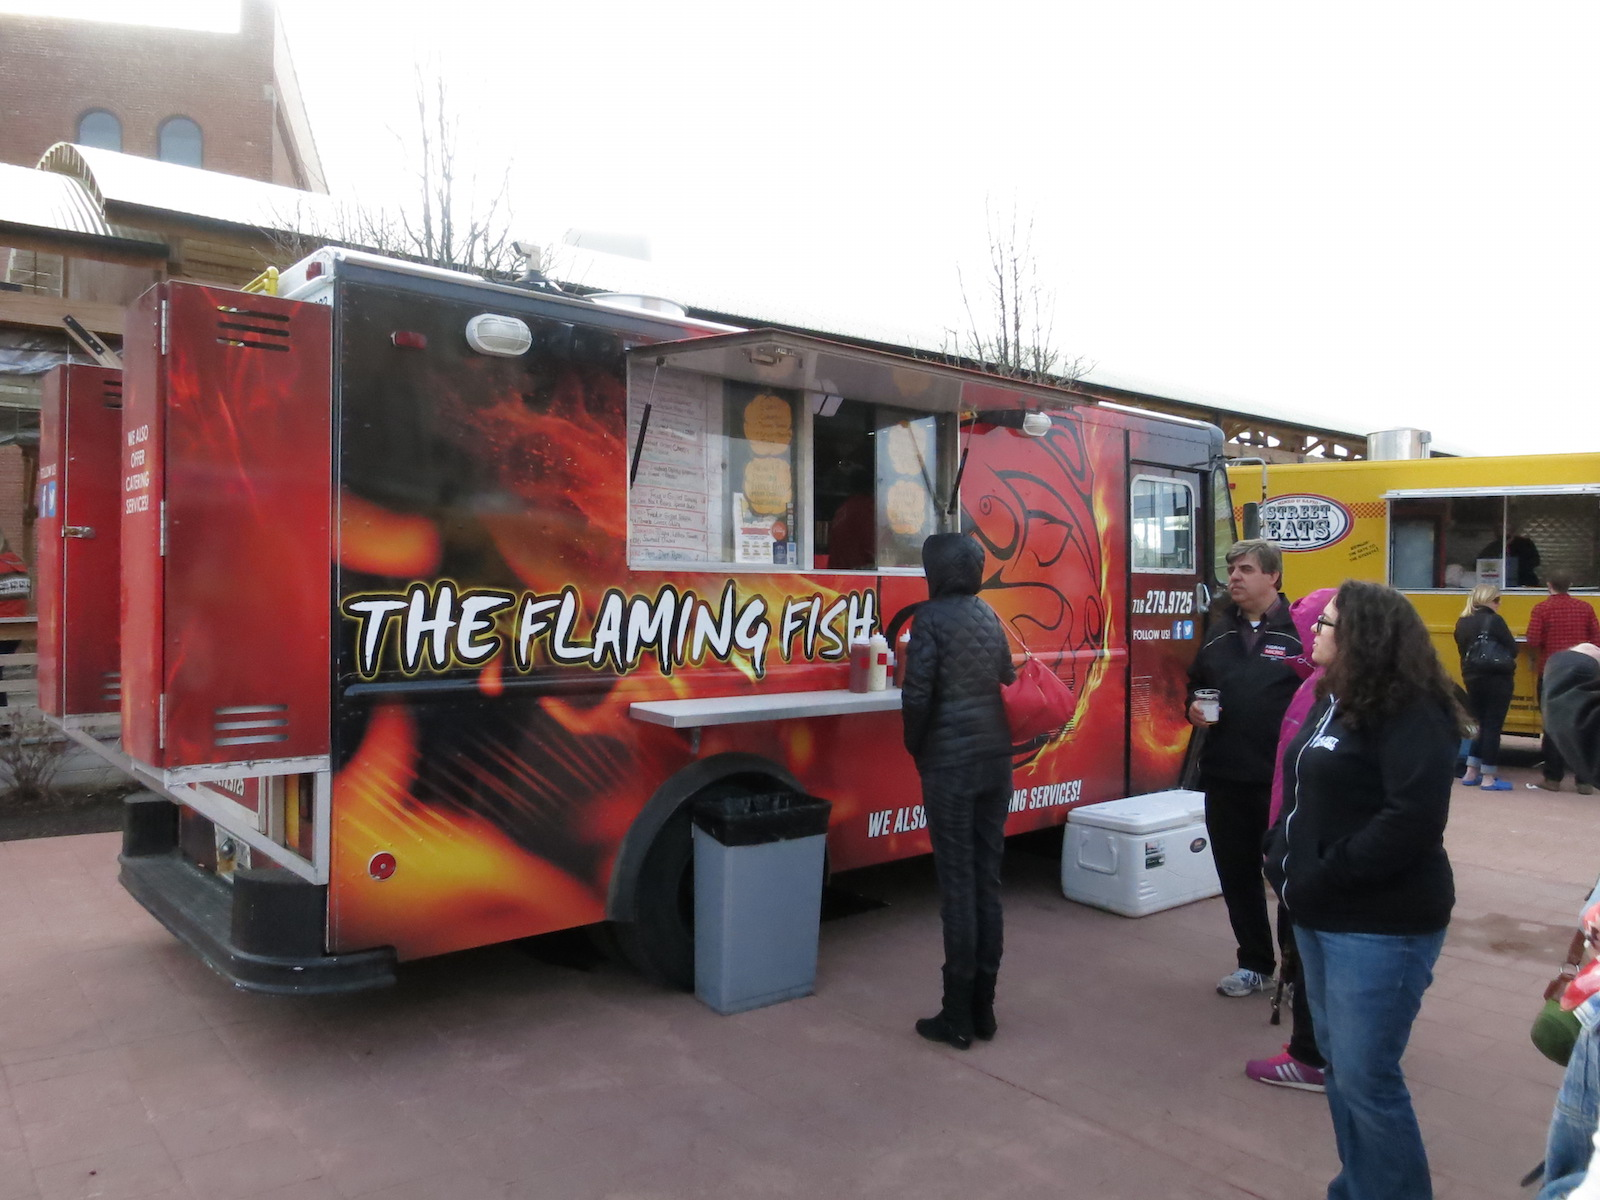 The flaming fish buffalo eats for Flaming fish food truck